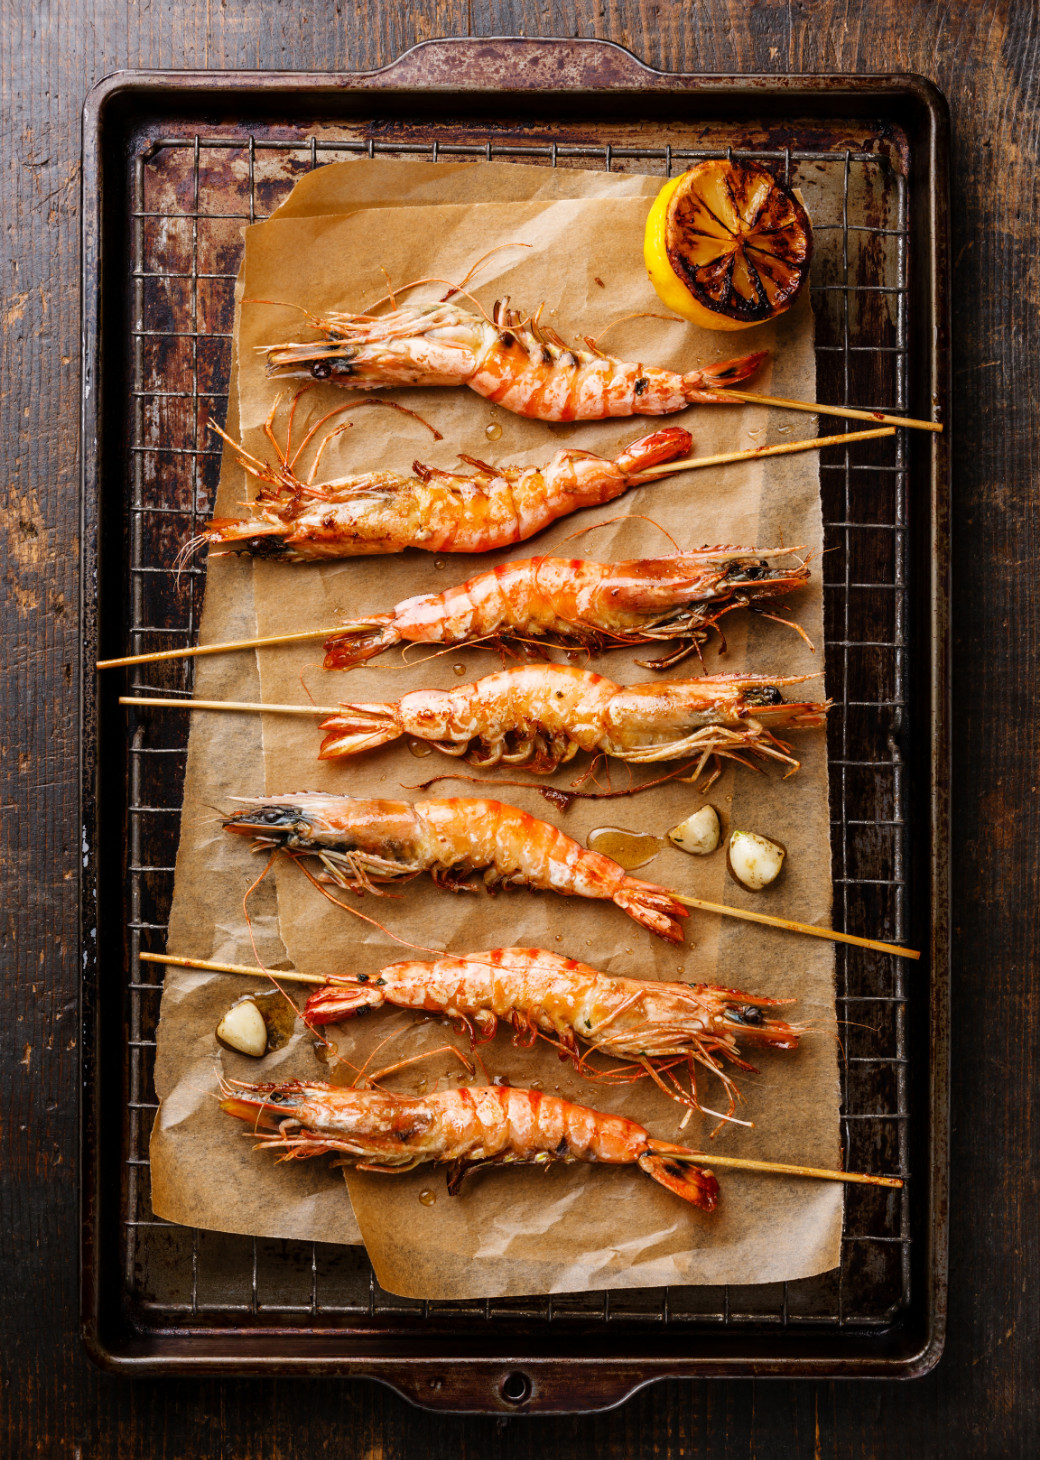 2 Authentic Prawn Recipes to Try This Fall